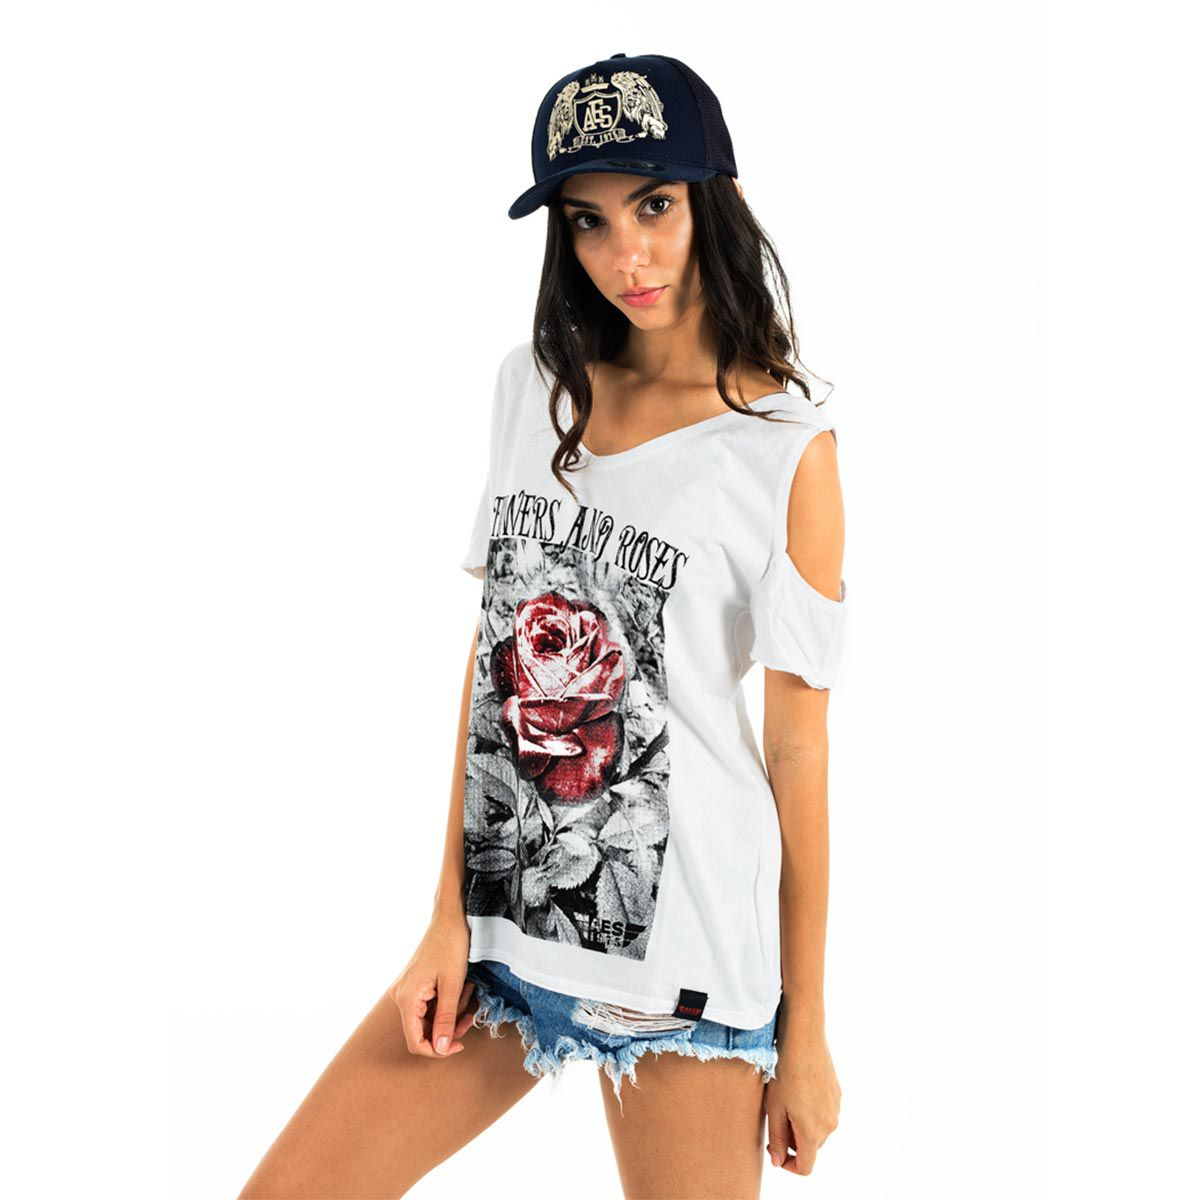 Camiseta AES 1975 Flowers and Roses